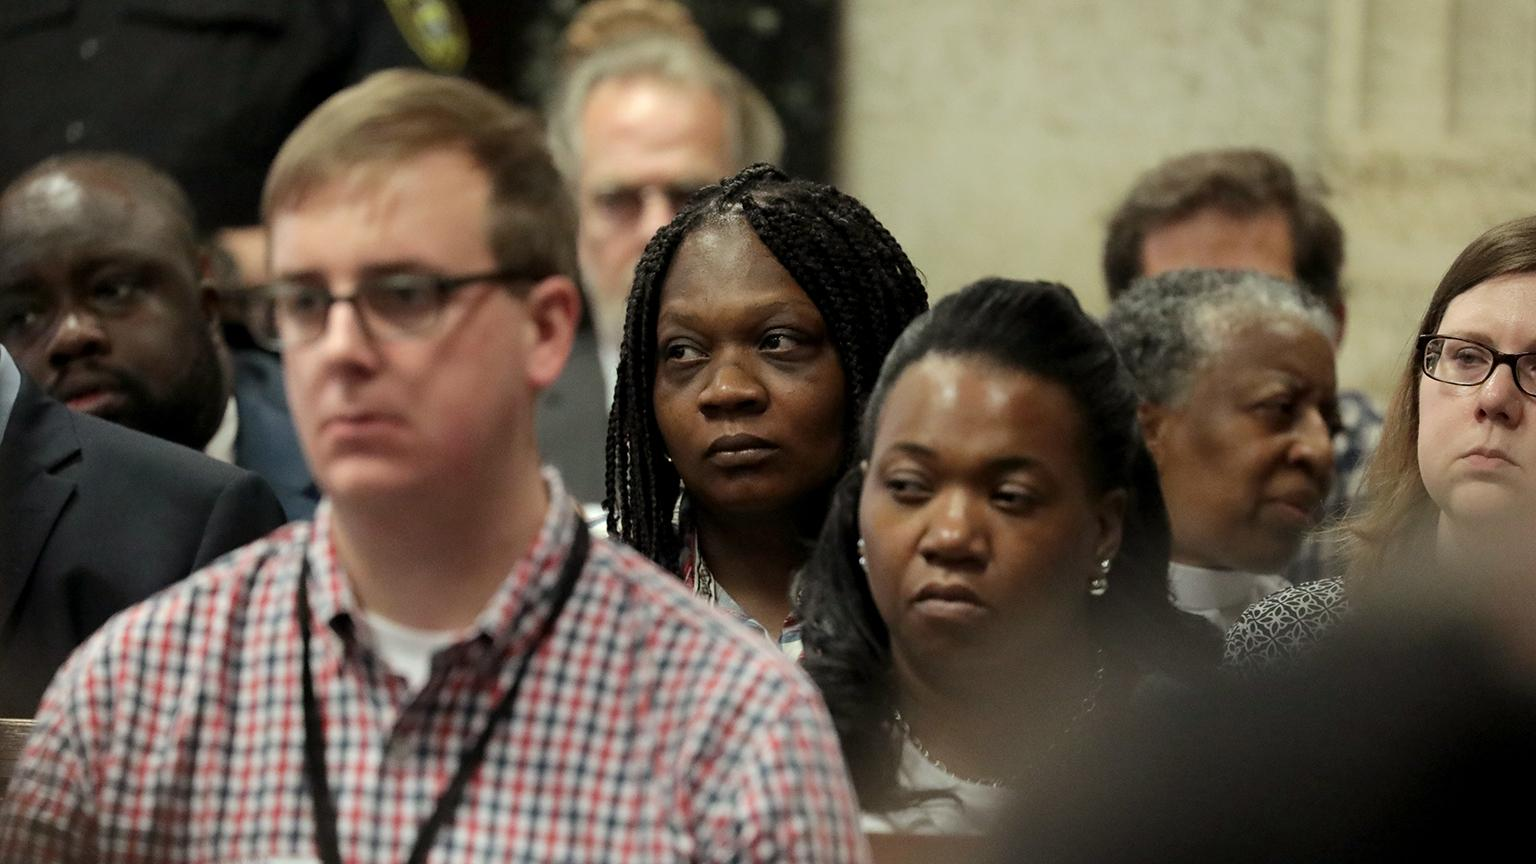 Tina Hunter, center, watches from the gallery during the trial for the shooting death of her son at the Leighton Criminal Court Building on Thursday, Sept. 20, 2018. (Antonio Perez / Chicago Tribune / Pool)